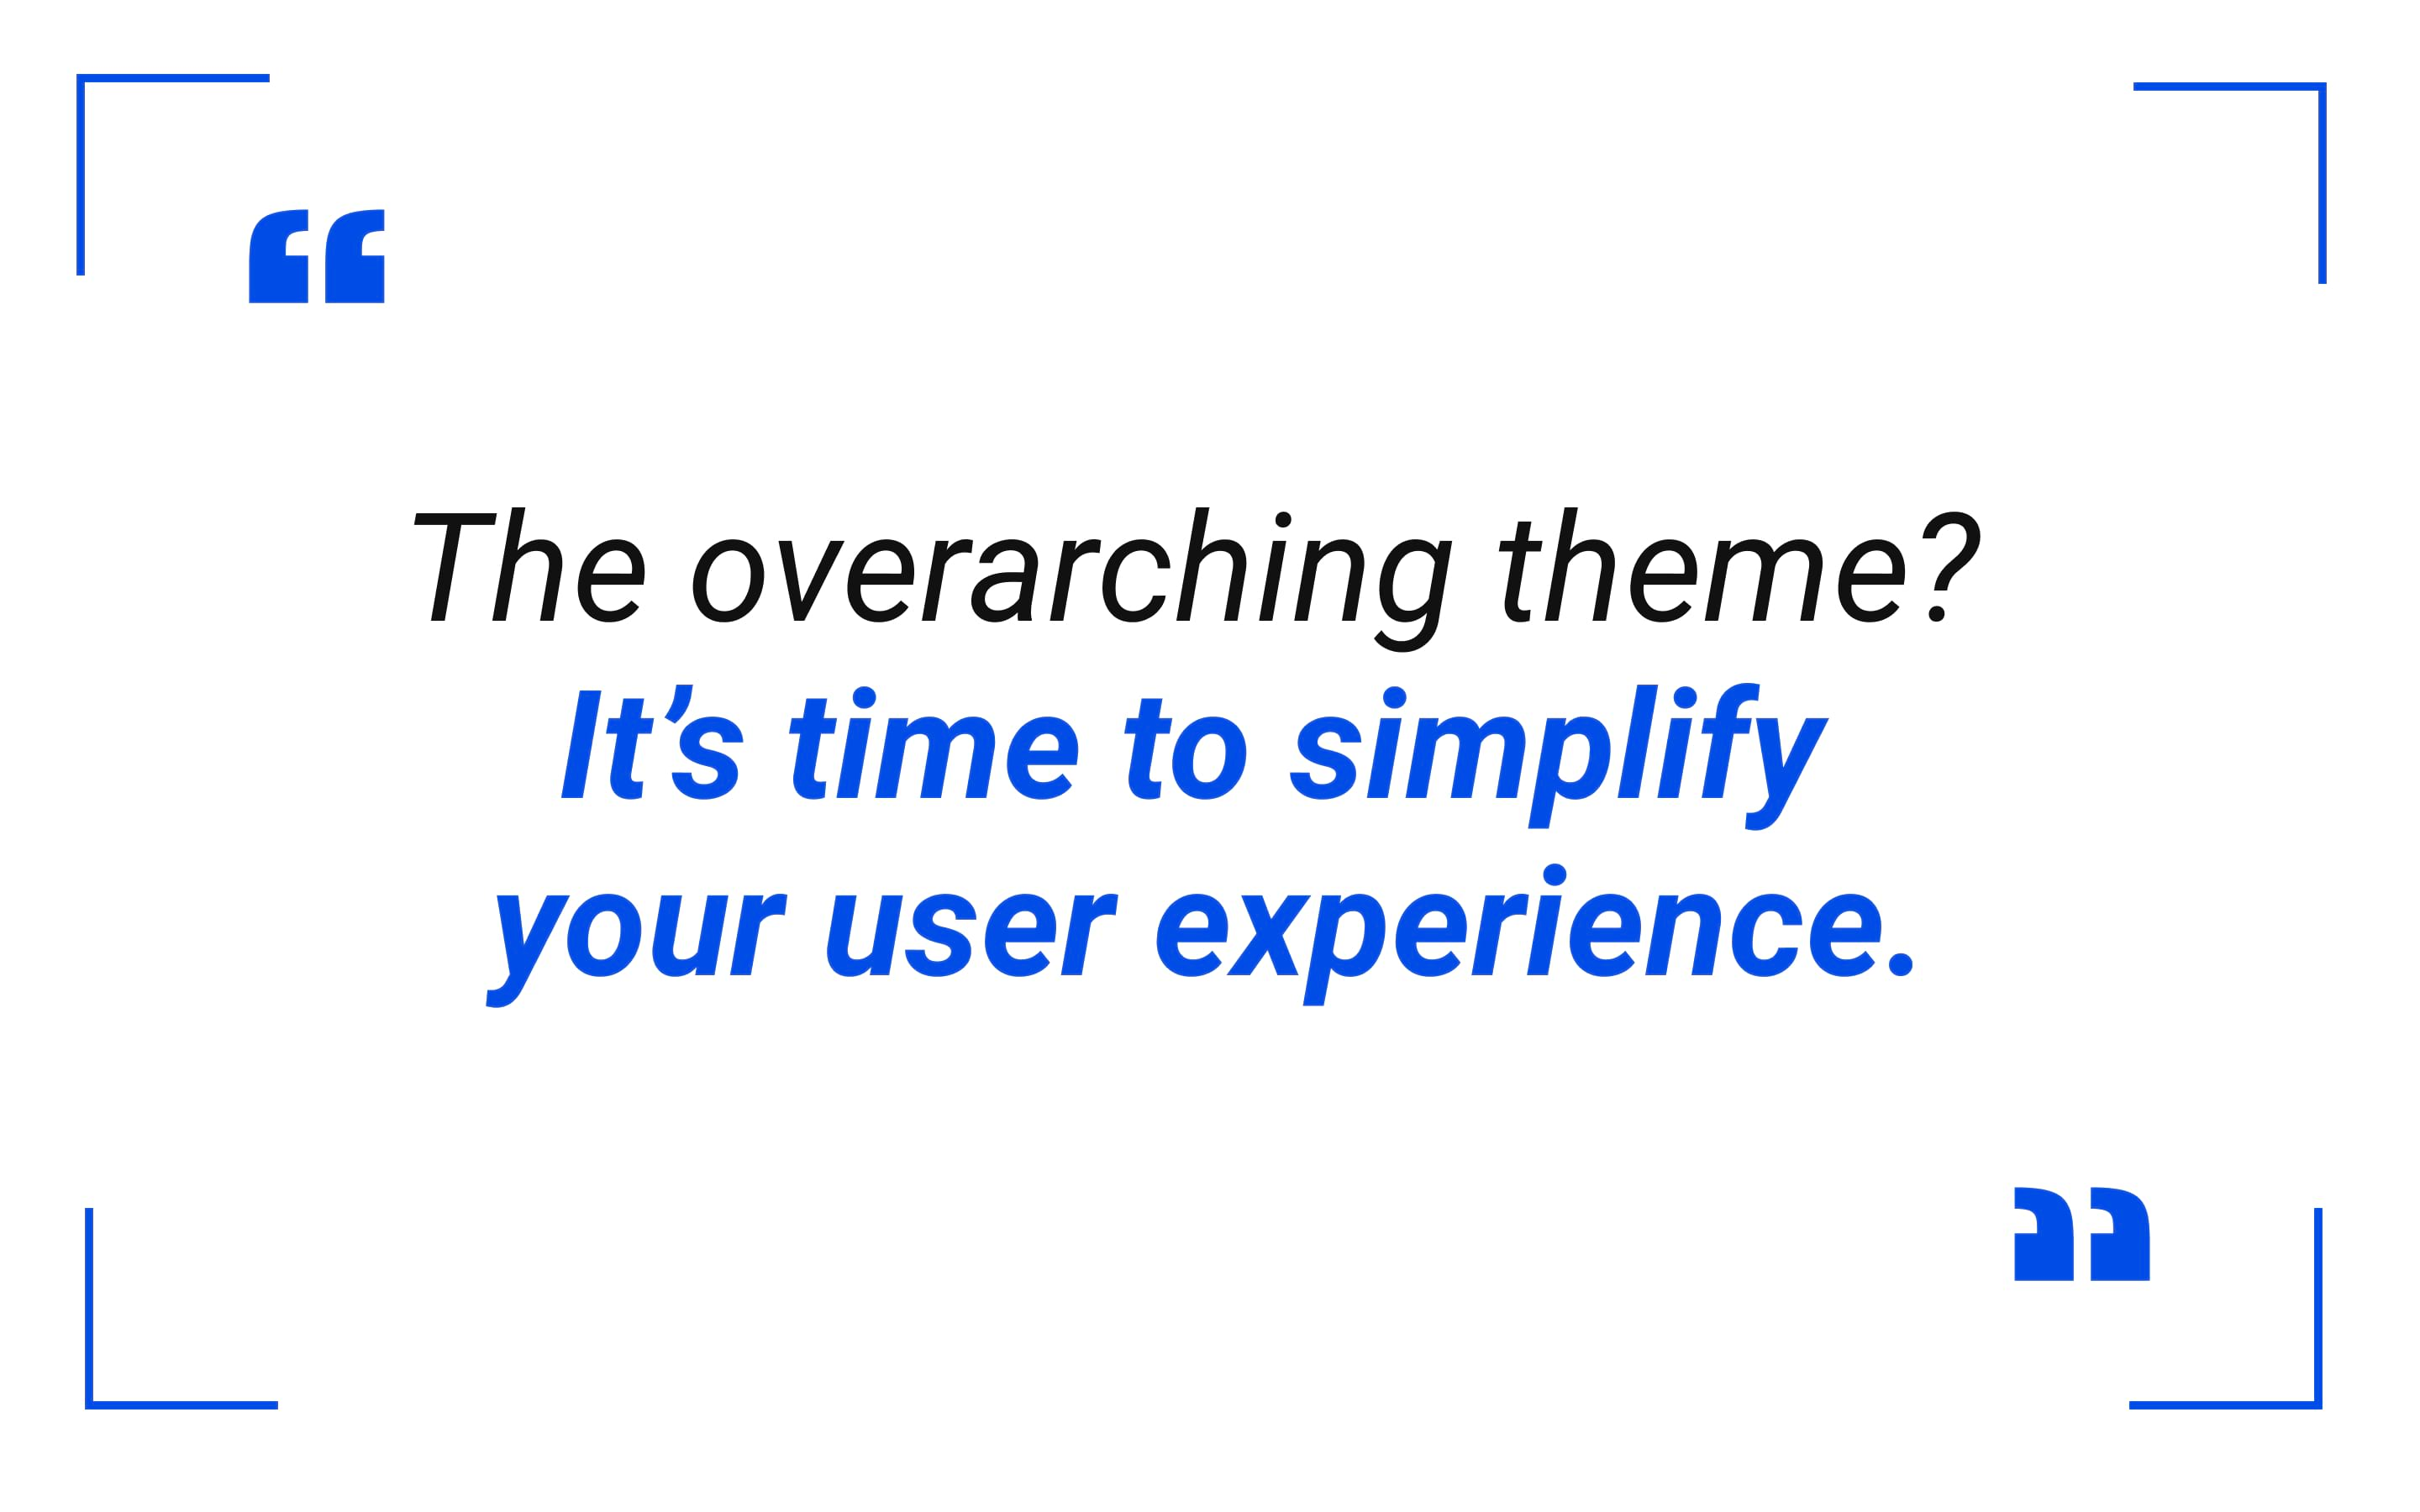 It's time to simplify your user experience